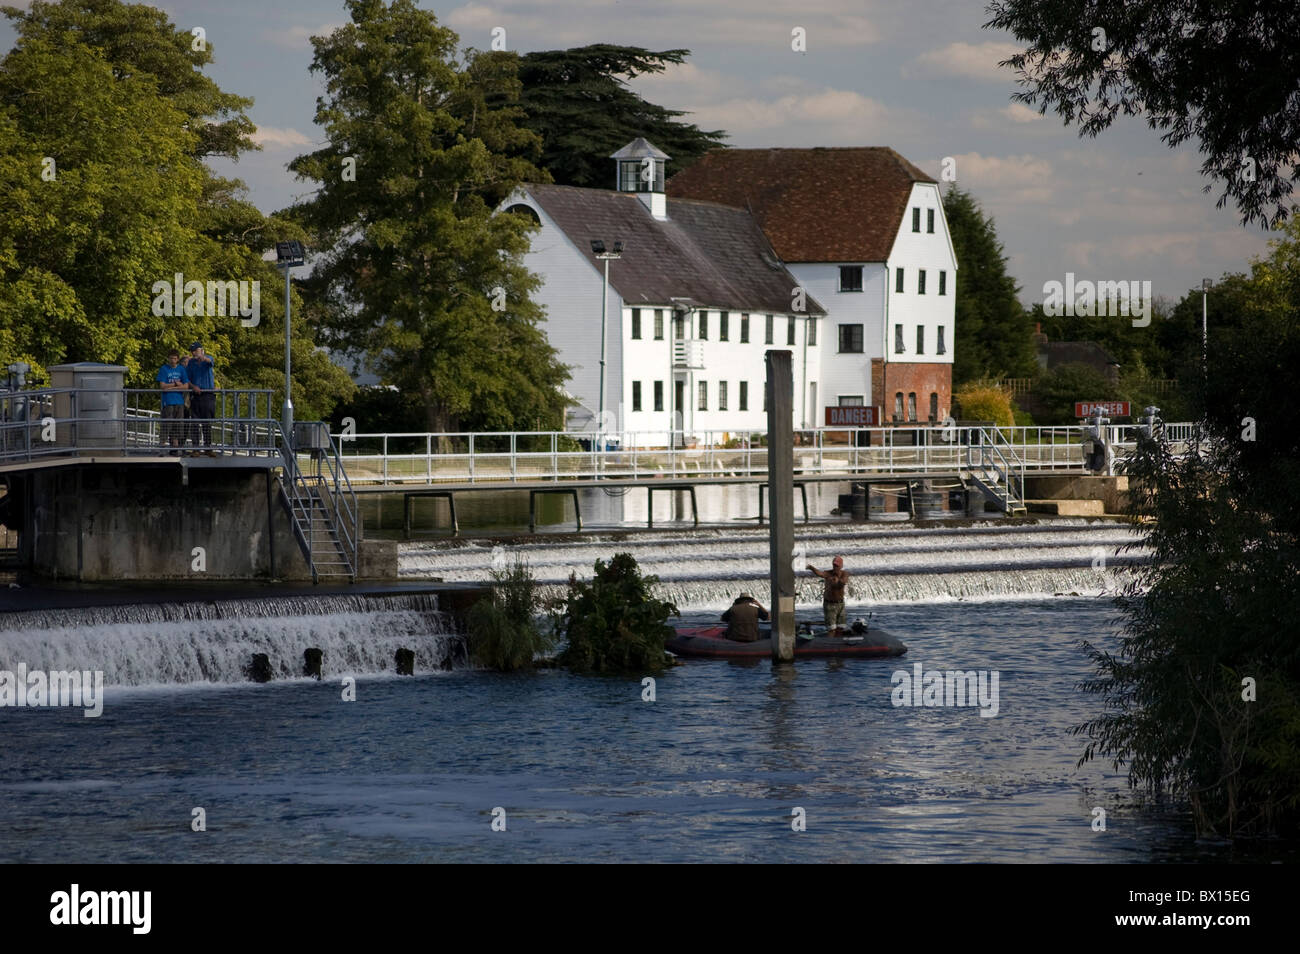 Hambleden Mill, Buckinghamshire, UK - Stock Image